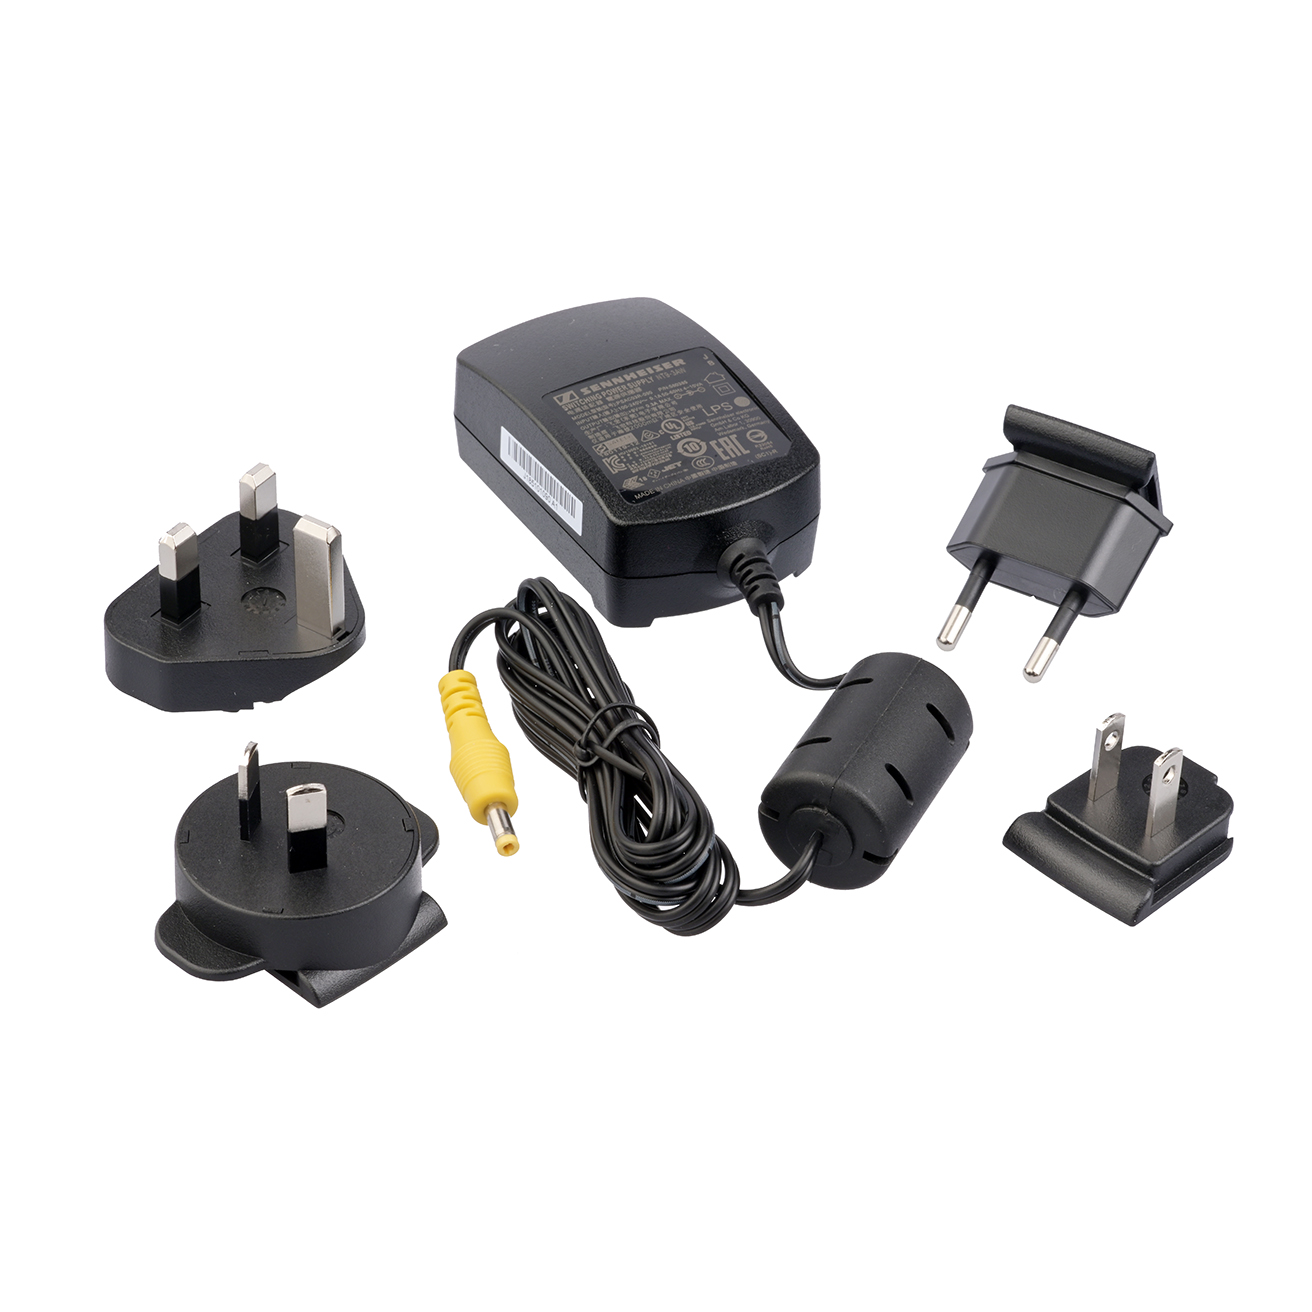 Power supply 9V-3W mit Länder-